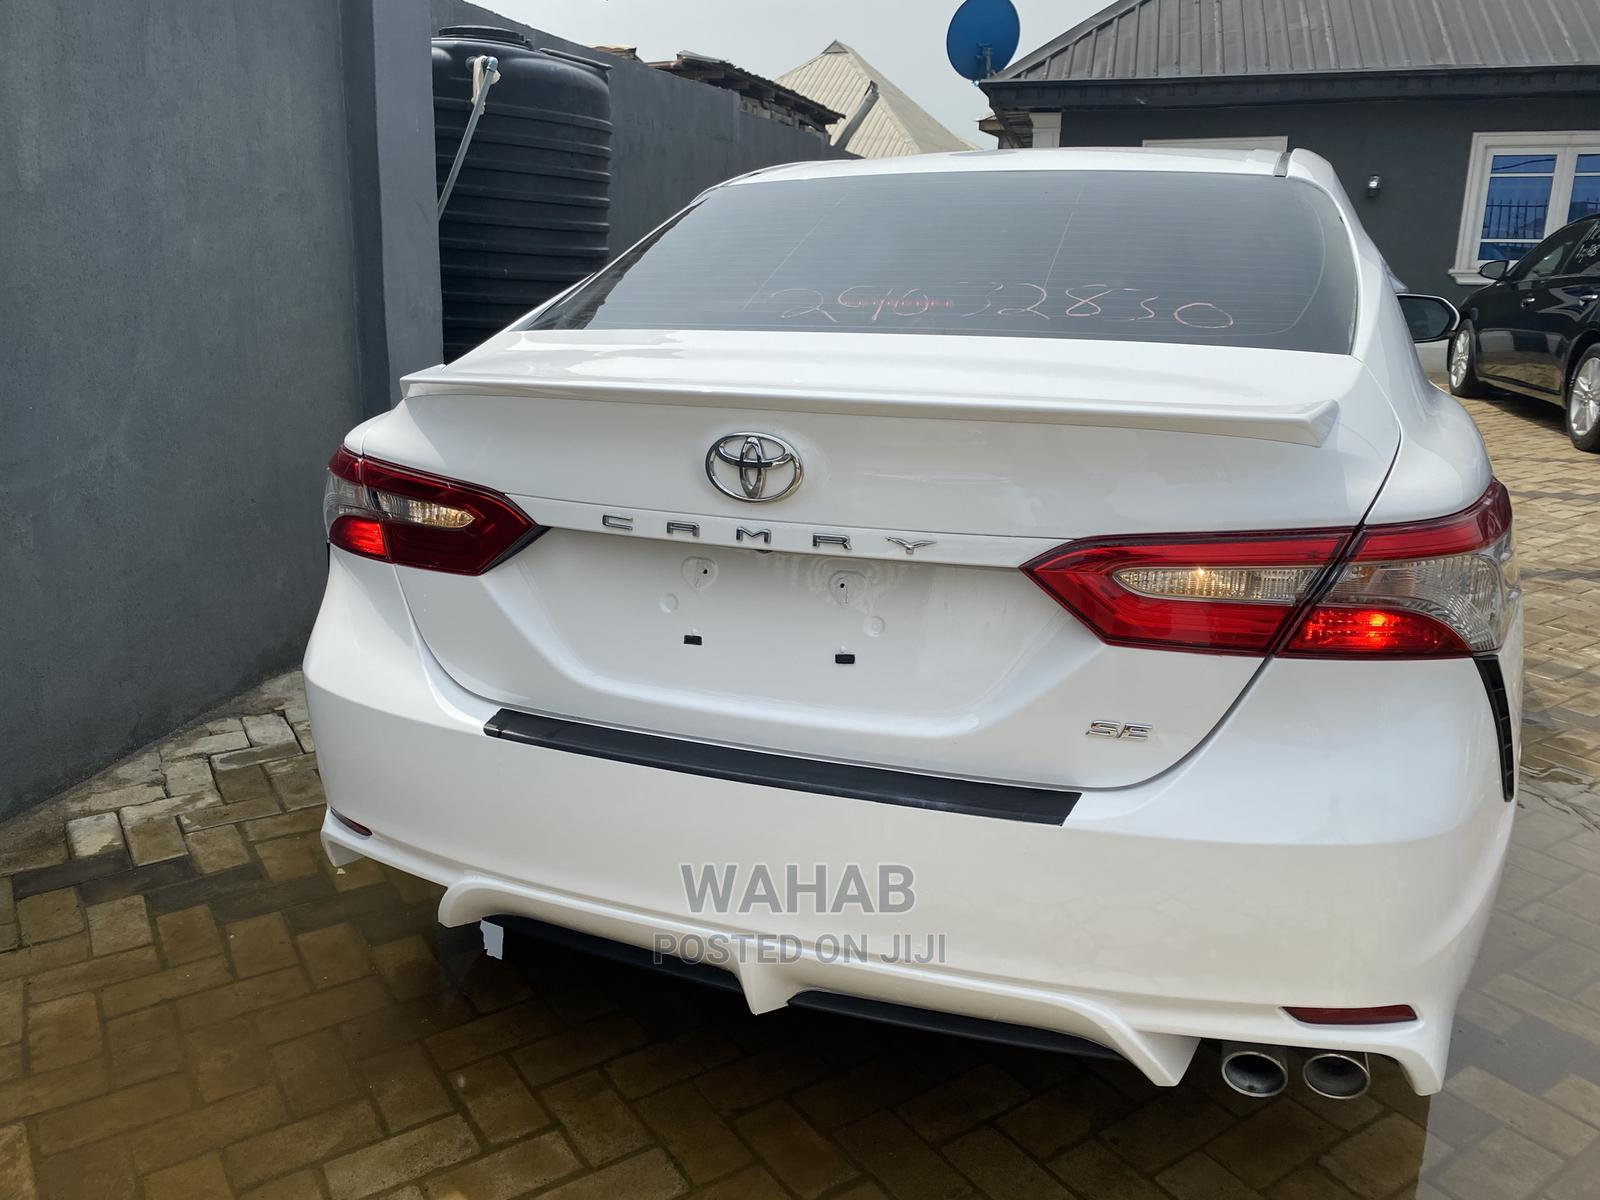 Toyota Camry 2018 SE FWD (2.5L 4cyl 8AM) White   Cars for sale in Ilupeju, Lagos State, Nigeria